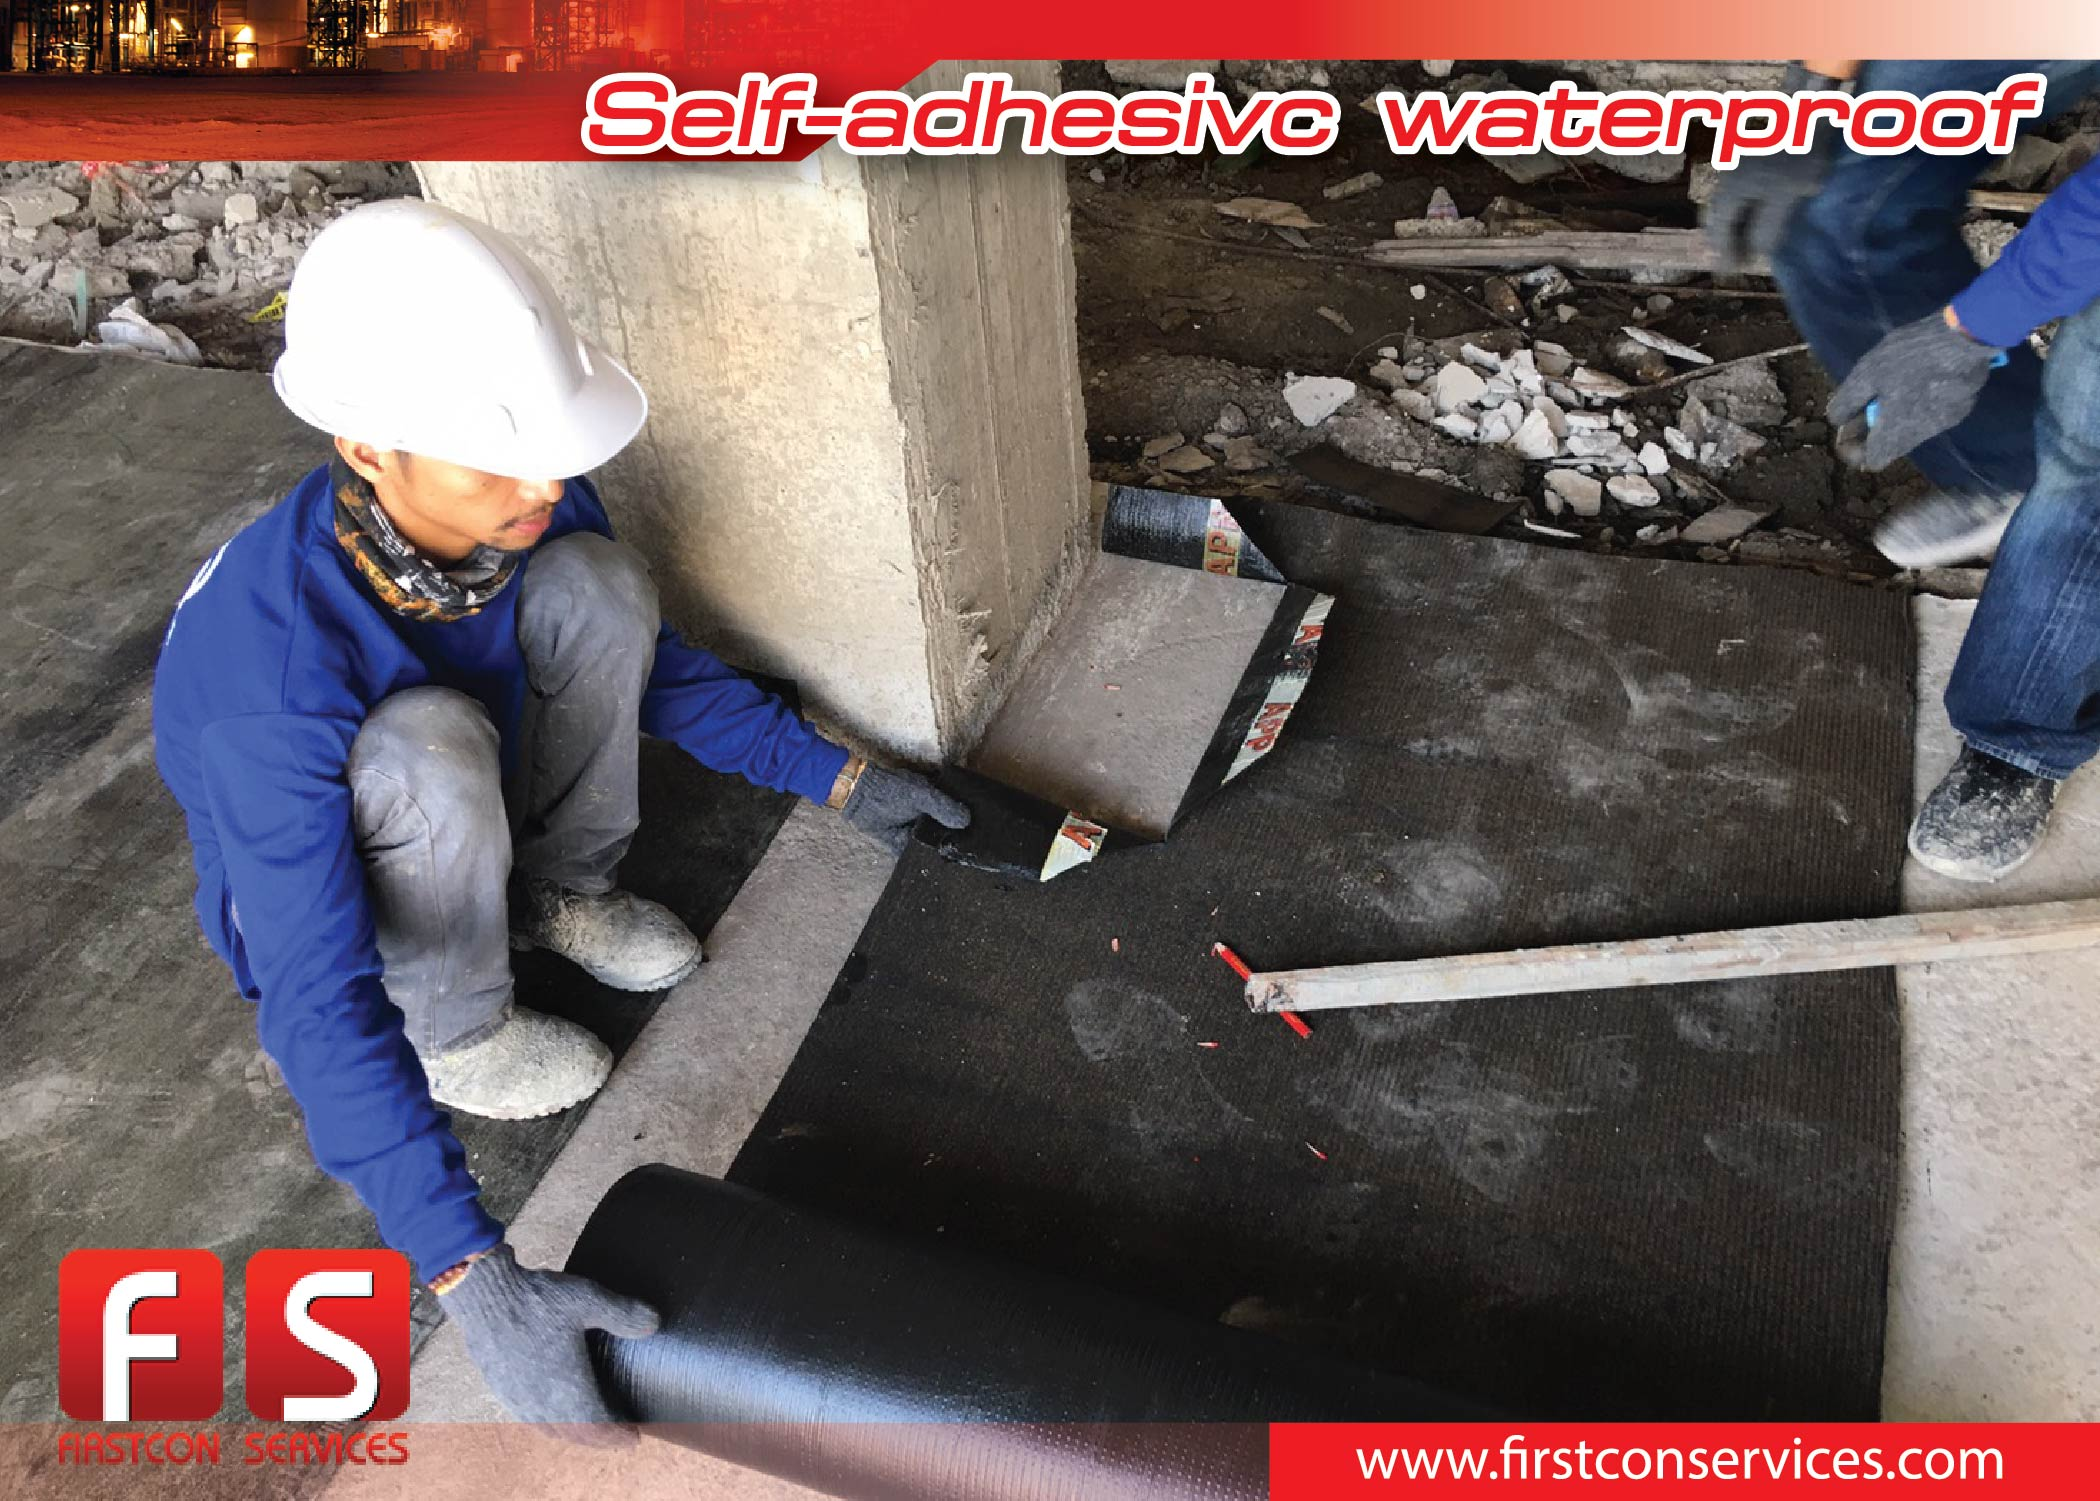 Self-adhesivc waterproof showroom Empire Stone